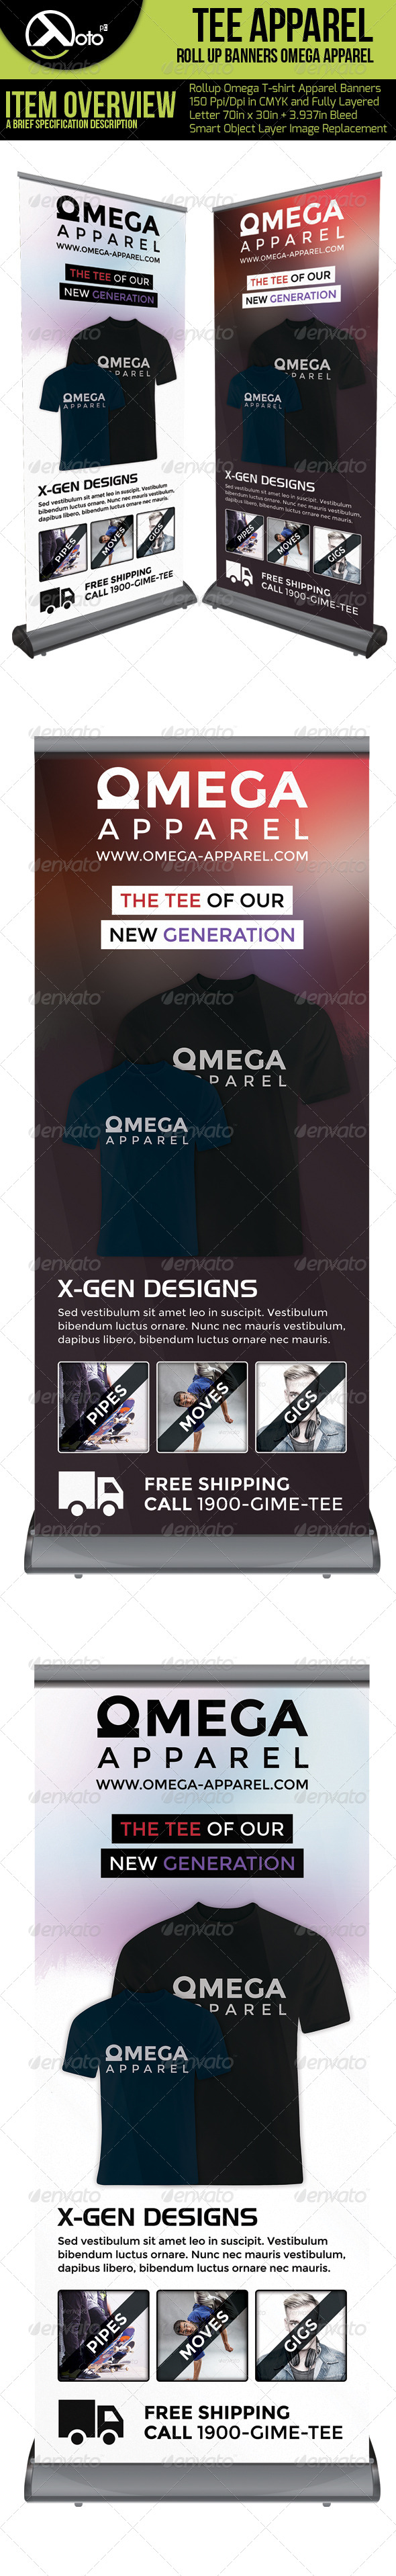 GraphicRiver Omega Tee Apparel Roll Up Banners 6311088